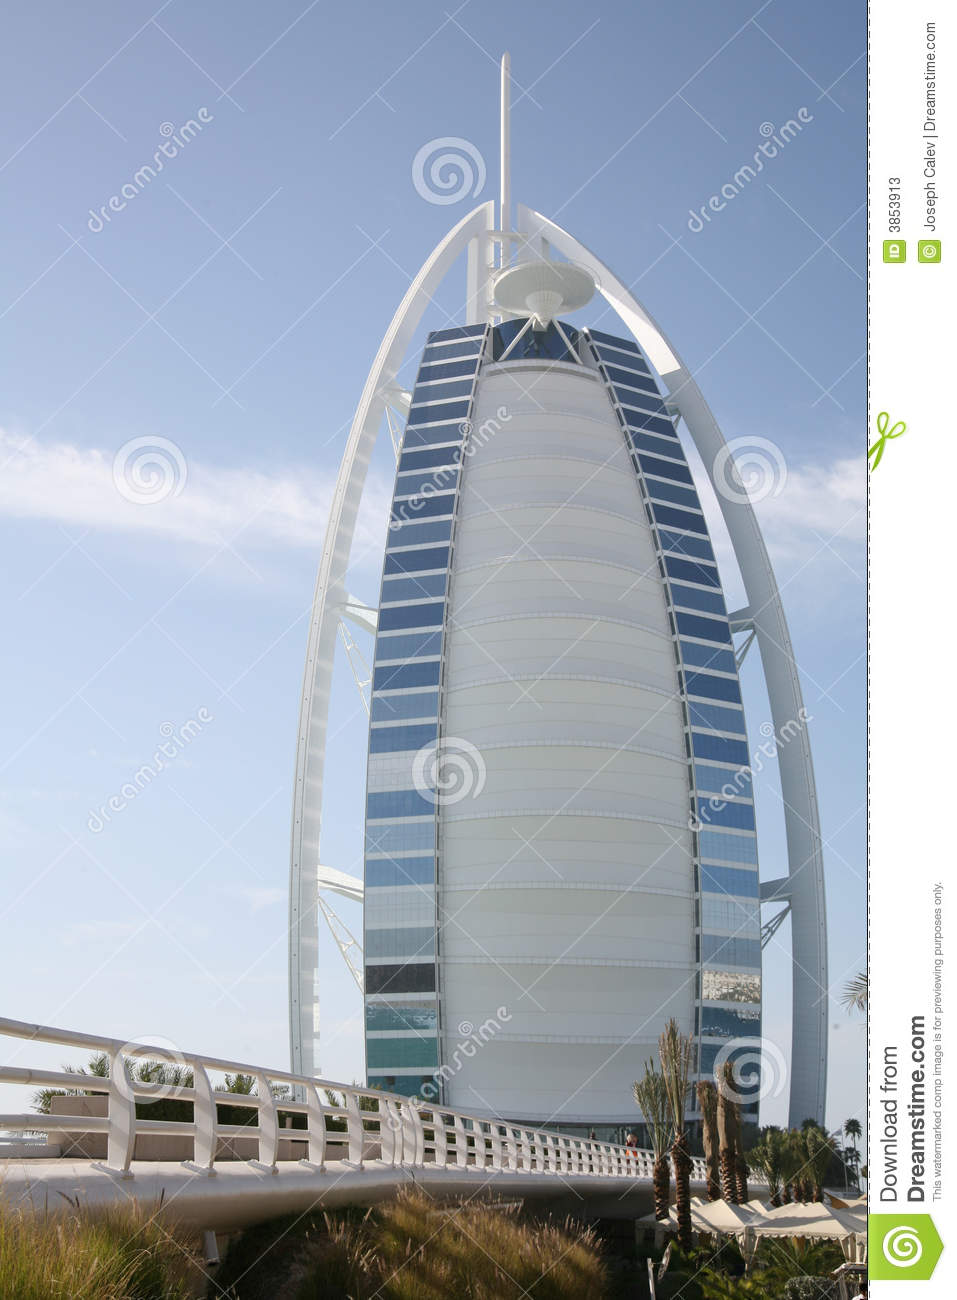 Burj al arab hotel dubai stock photos image 3853913 for Burj arab hotel dubai